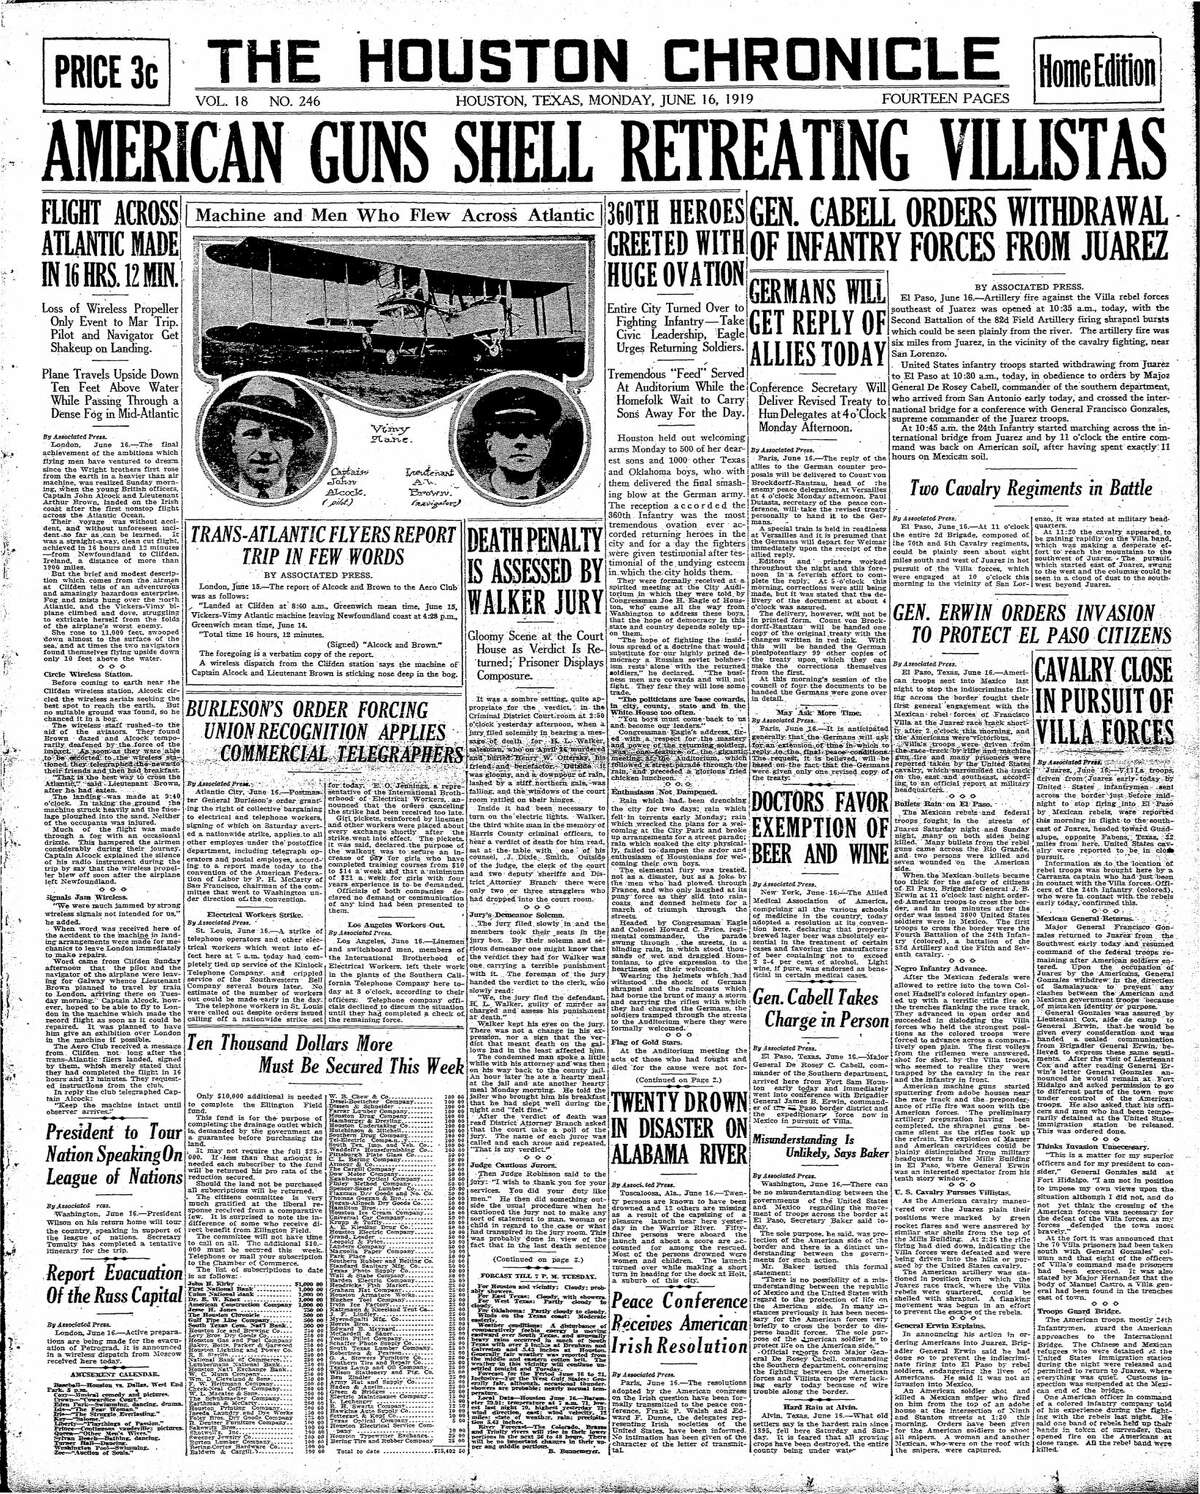 Houston Chronicle front page for June 16, 1919.